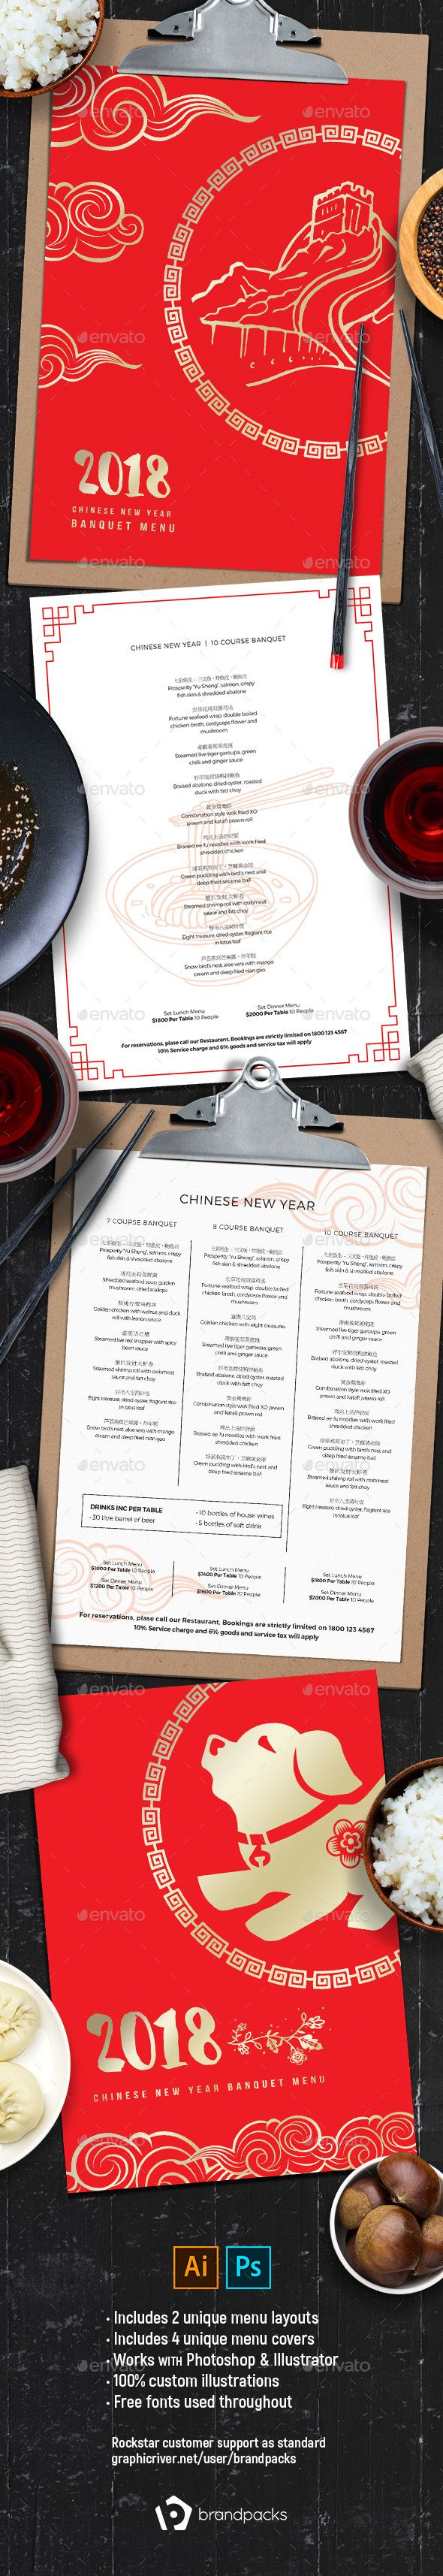 Chinese Menu Template #Chinese restaurant #chinese menu template • Download ➝ https://graphicriver.net/item/chinese-menu-template/21214972?ref=pxcr